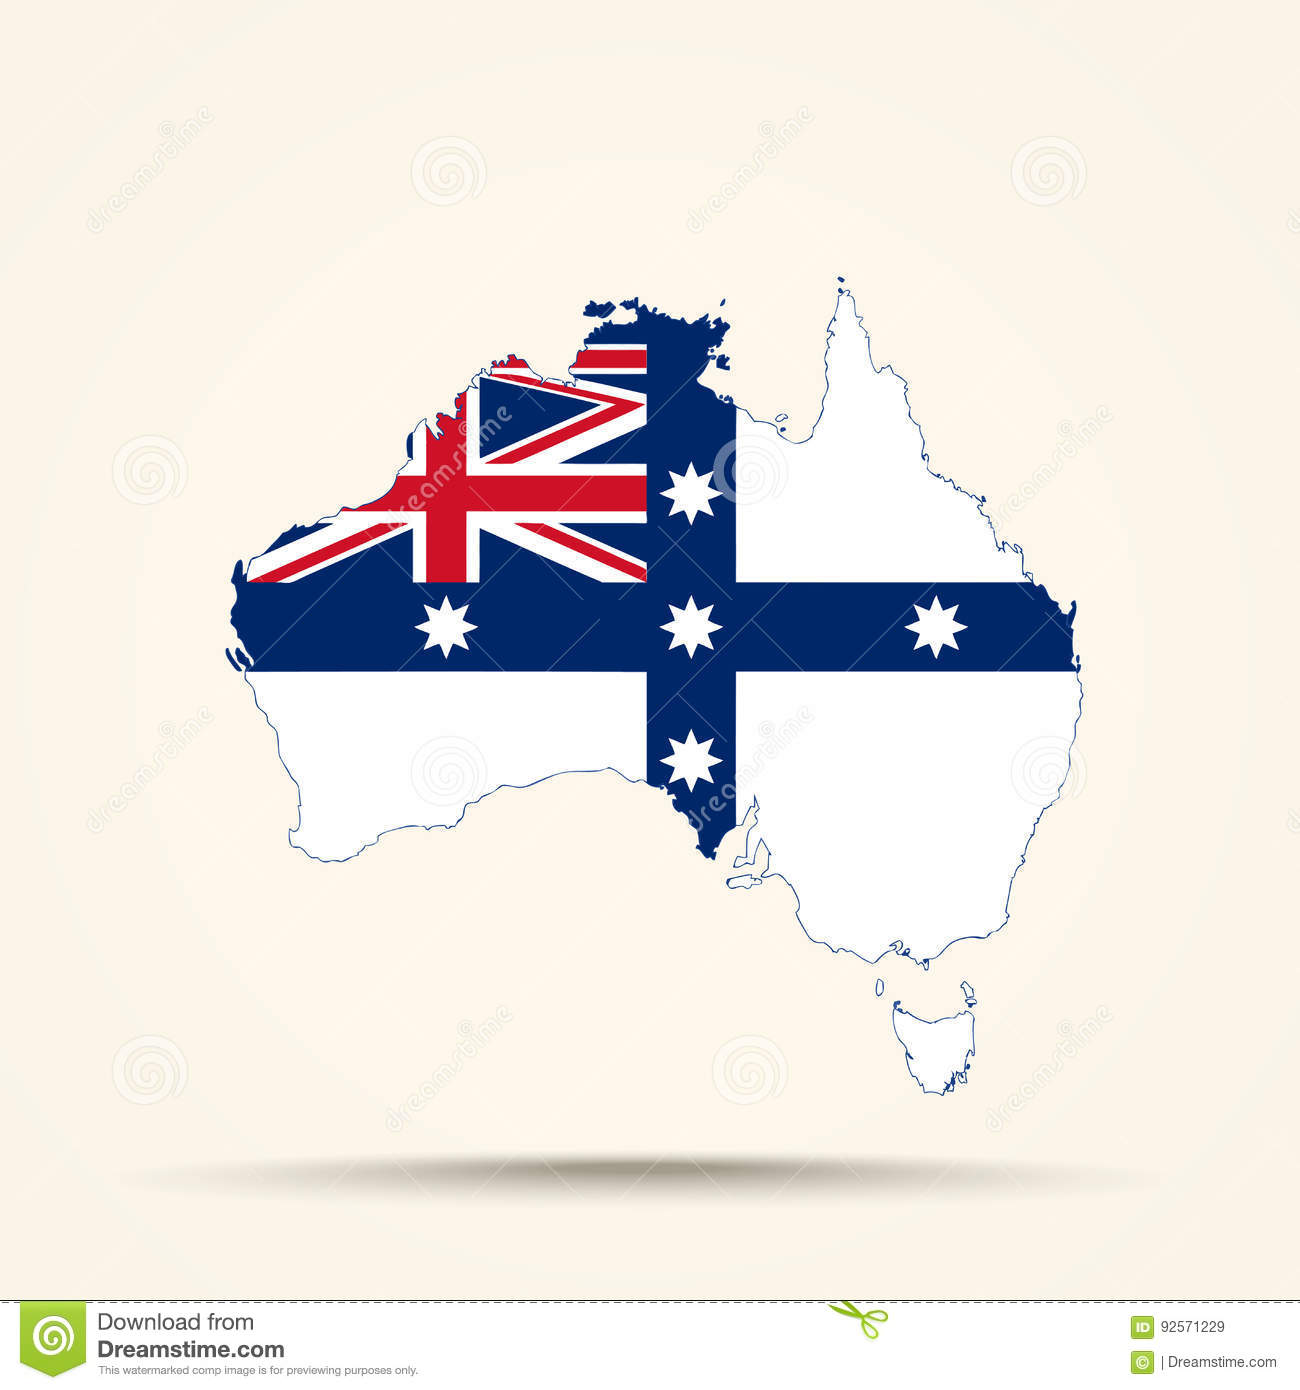 Map Of Australia Before Federation.Map Of Australia In Australian Federation Flag Colors Stock Vector